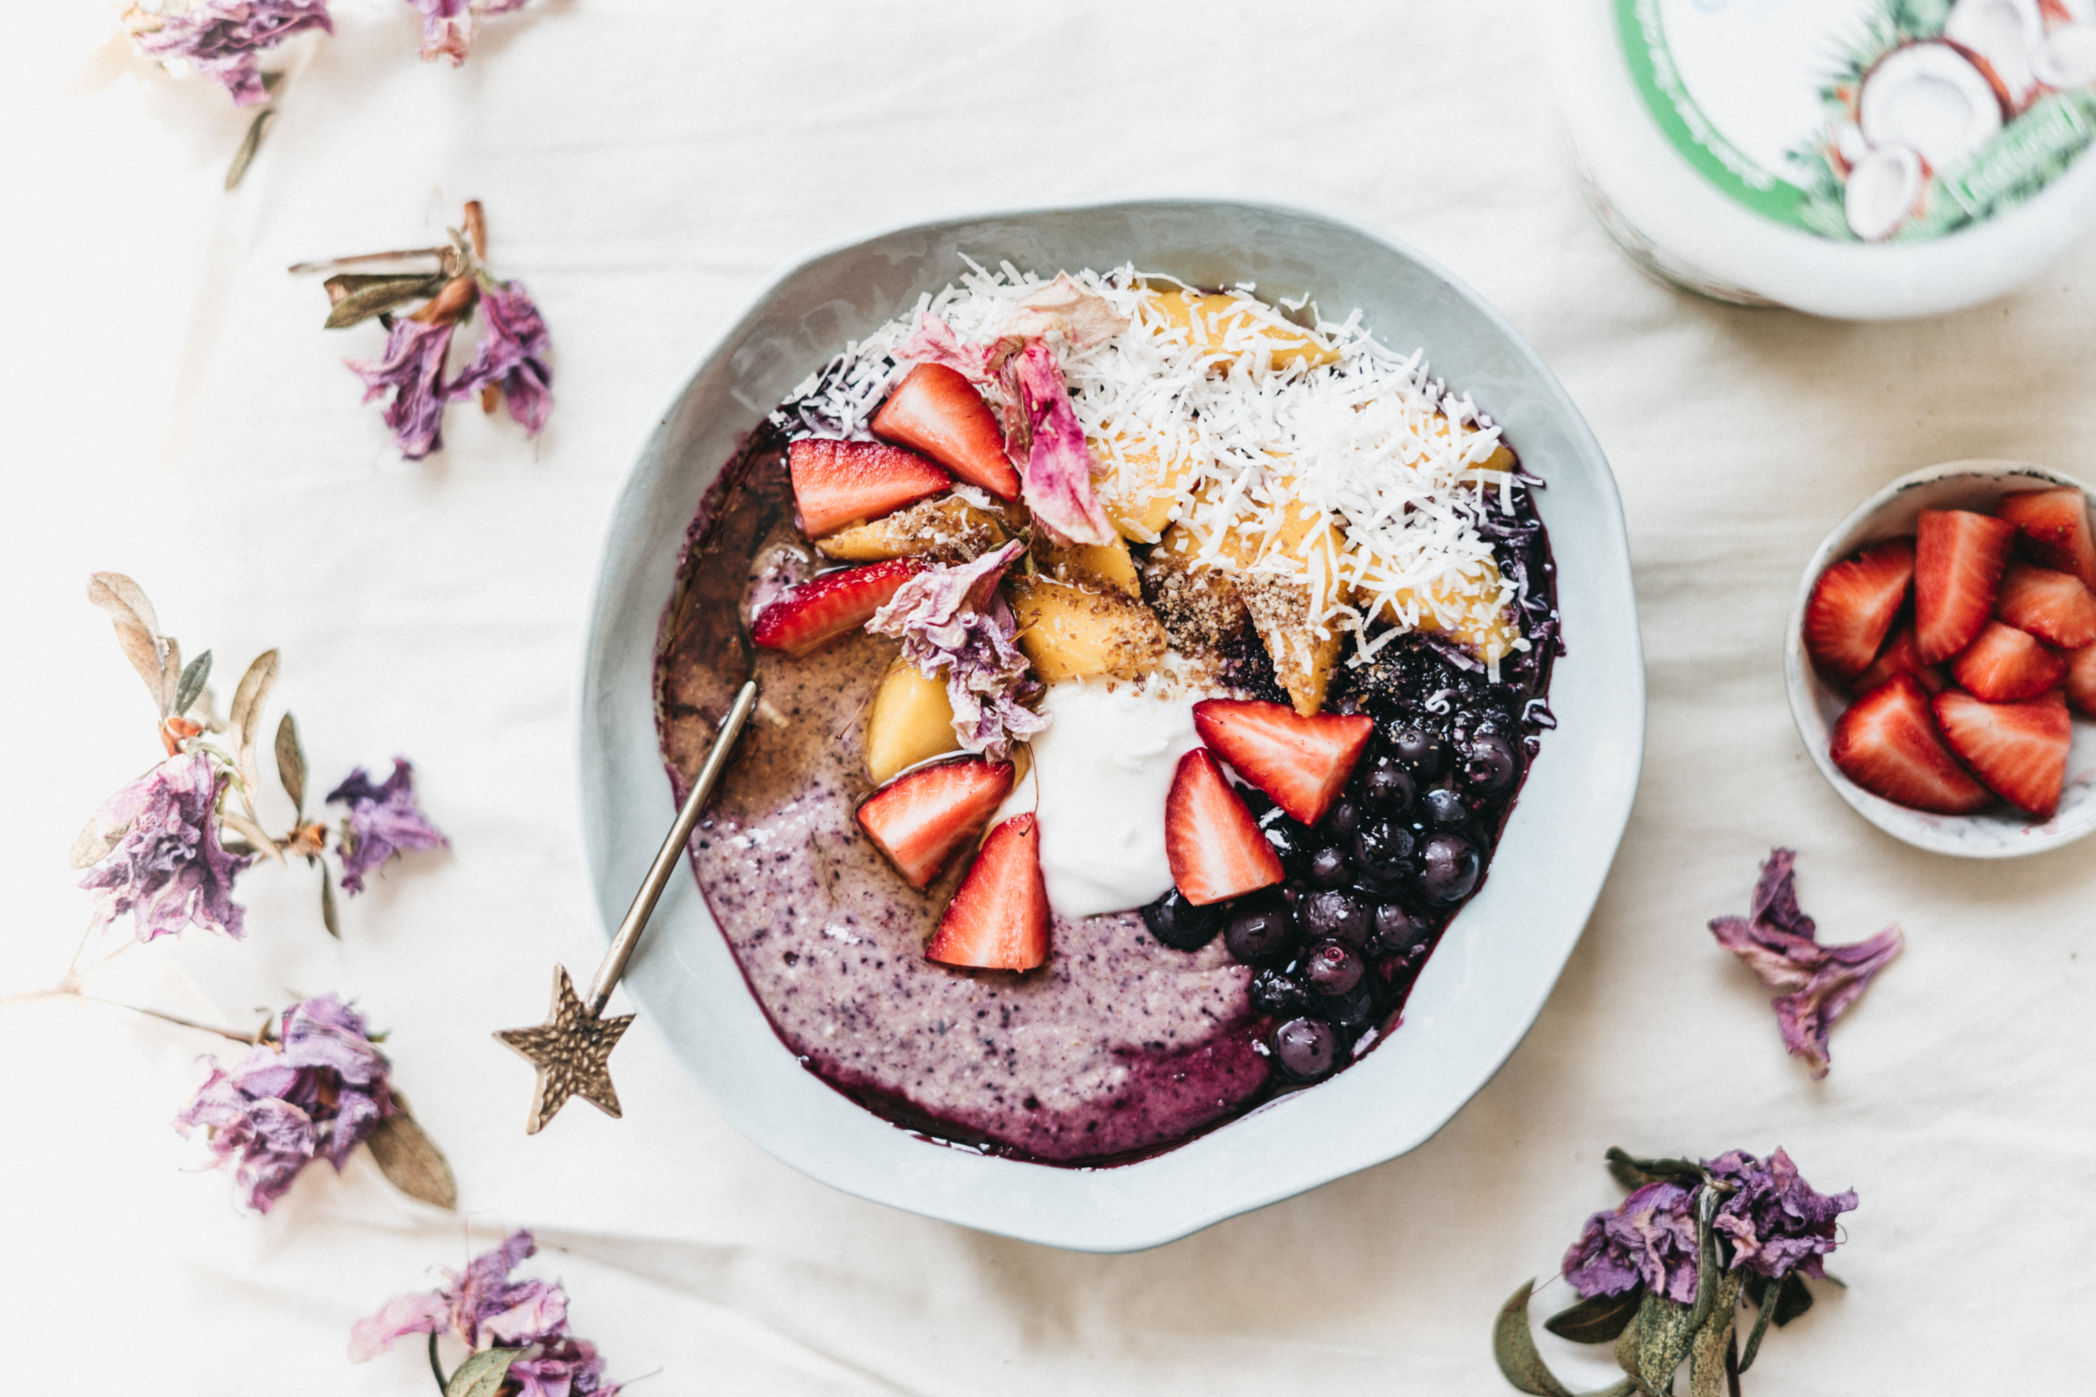 Blueberry Coconut Oats by Moeko of @mmmoky